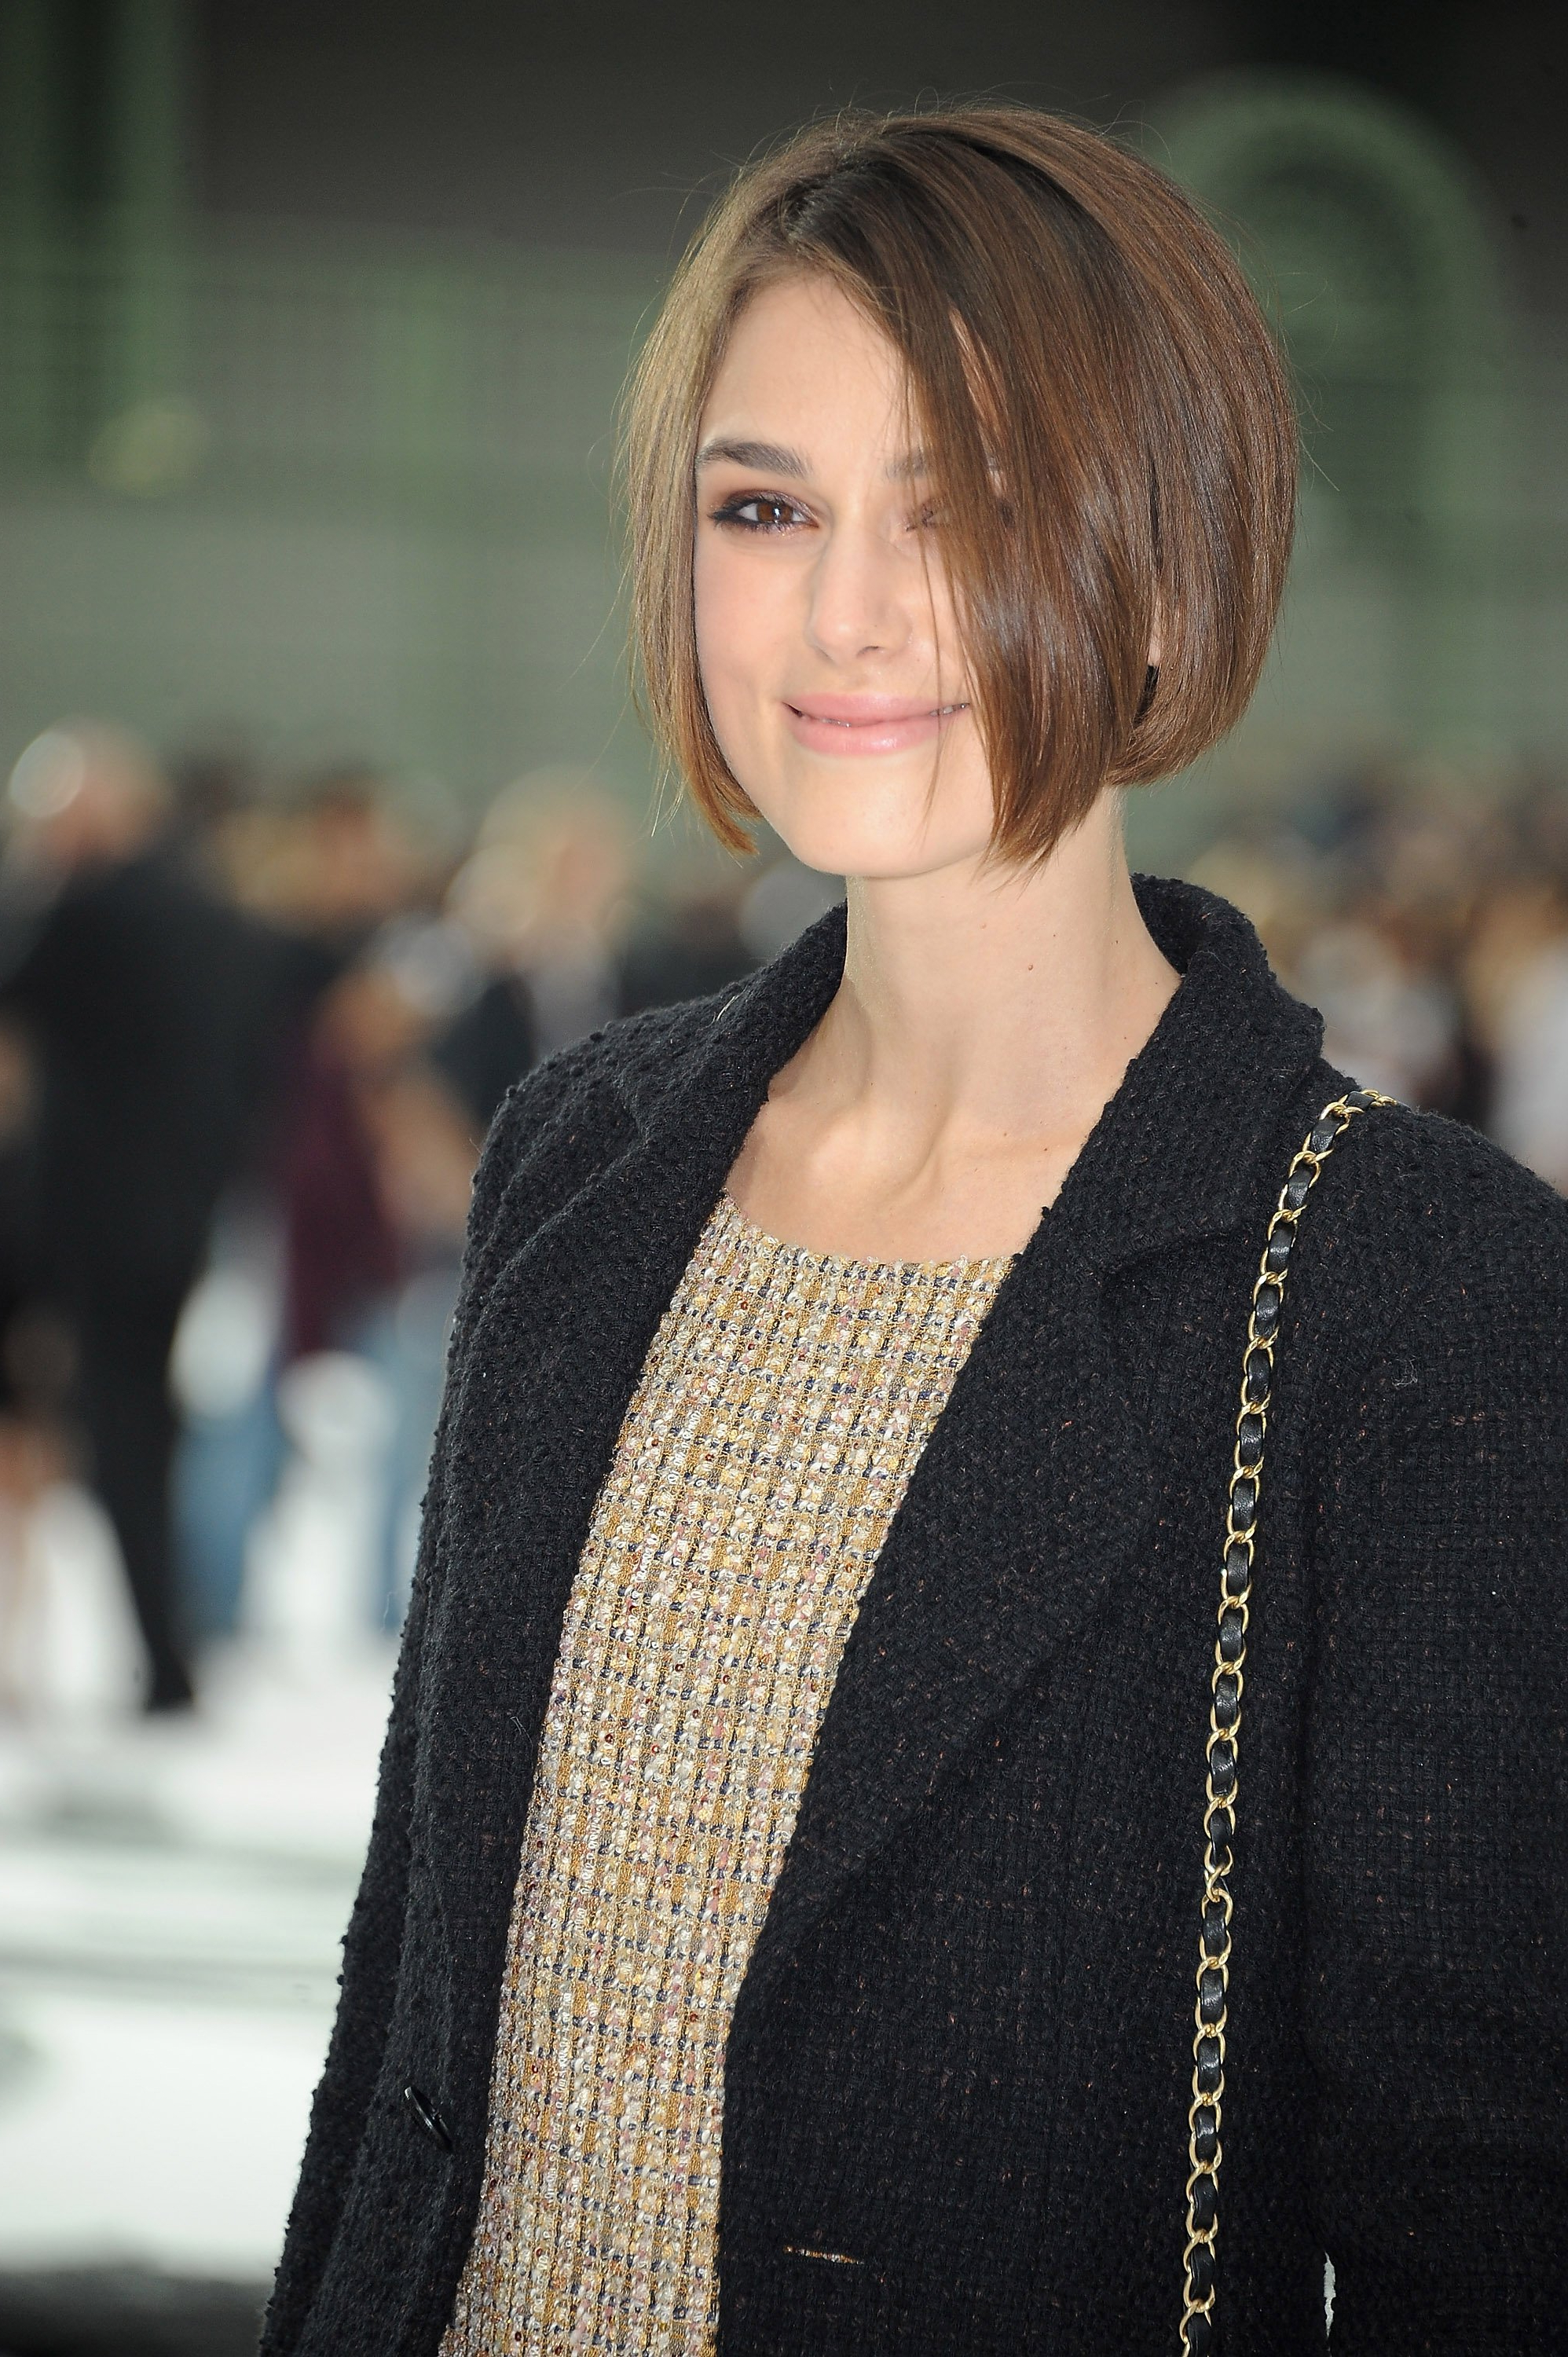 Pictures Of Celebs At The 2011 Spring Paris Fashion Week Chanel Show With Regard To Keira Knightley Short Haircuts (View 25 of 25)